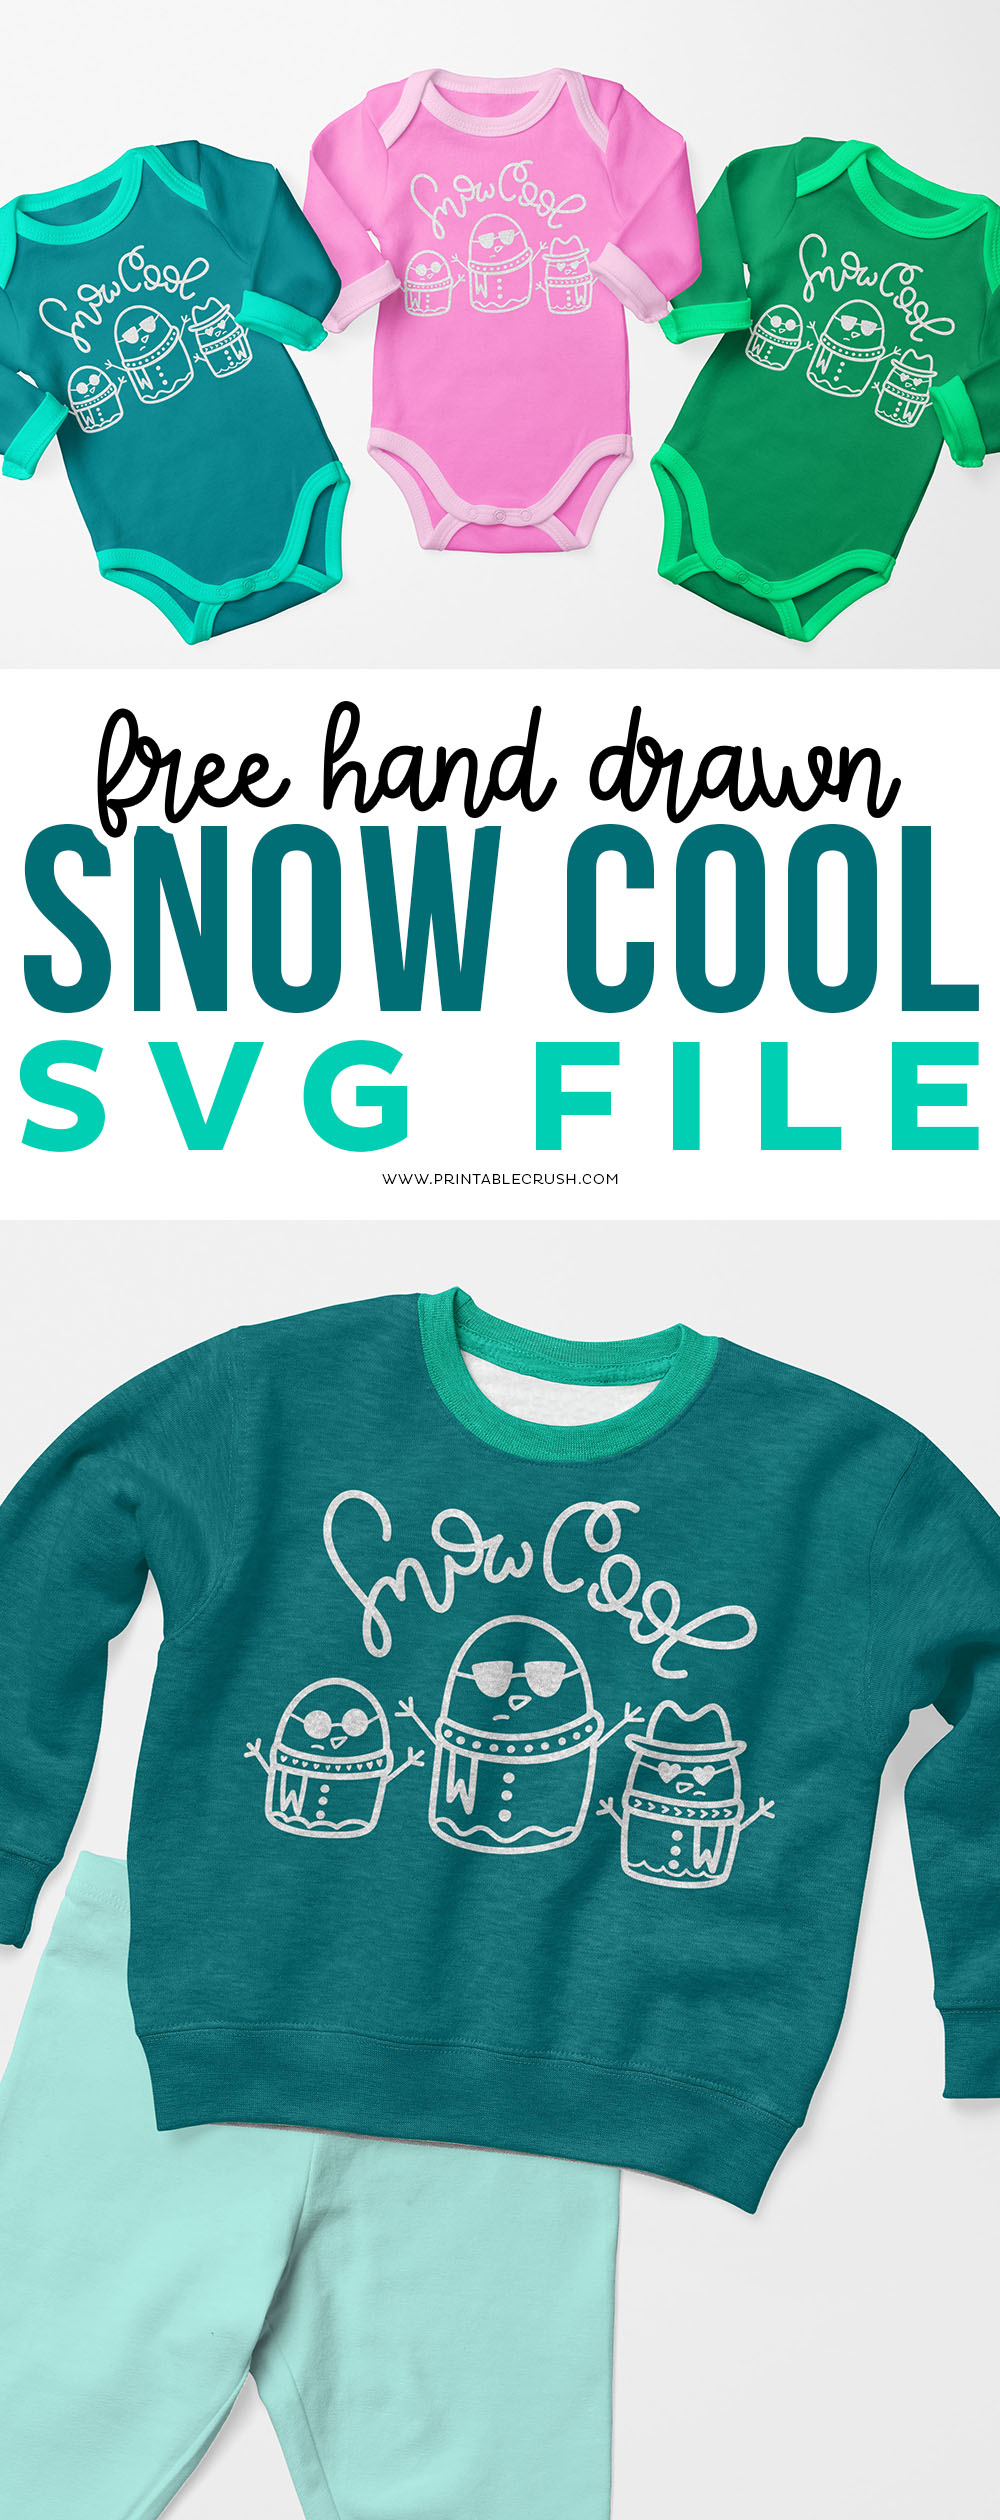 Free Hand Drawn Snow Cool SVG File - Free Snowman SVG File - Free Winter SVG File - Printable Crush